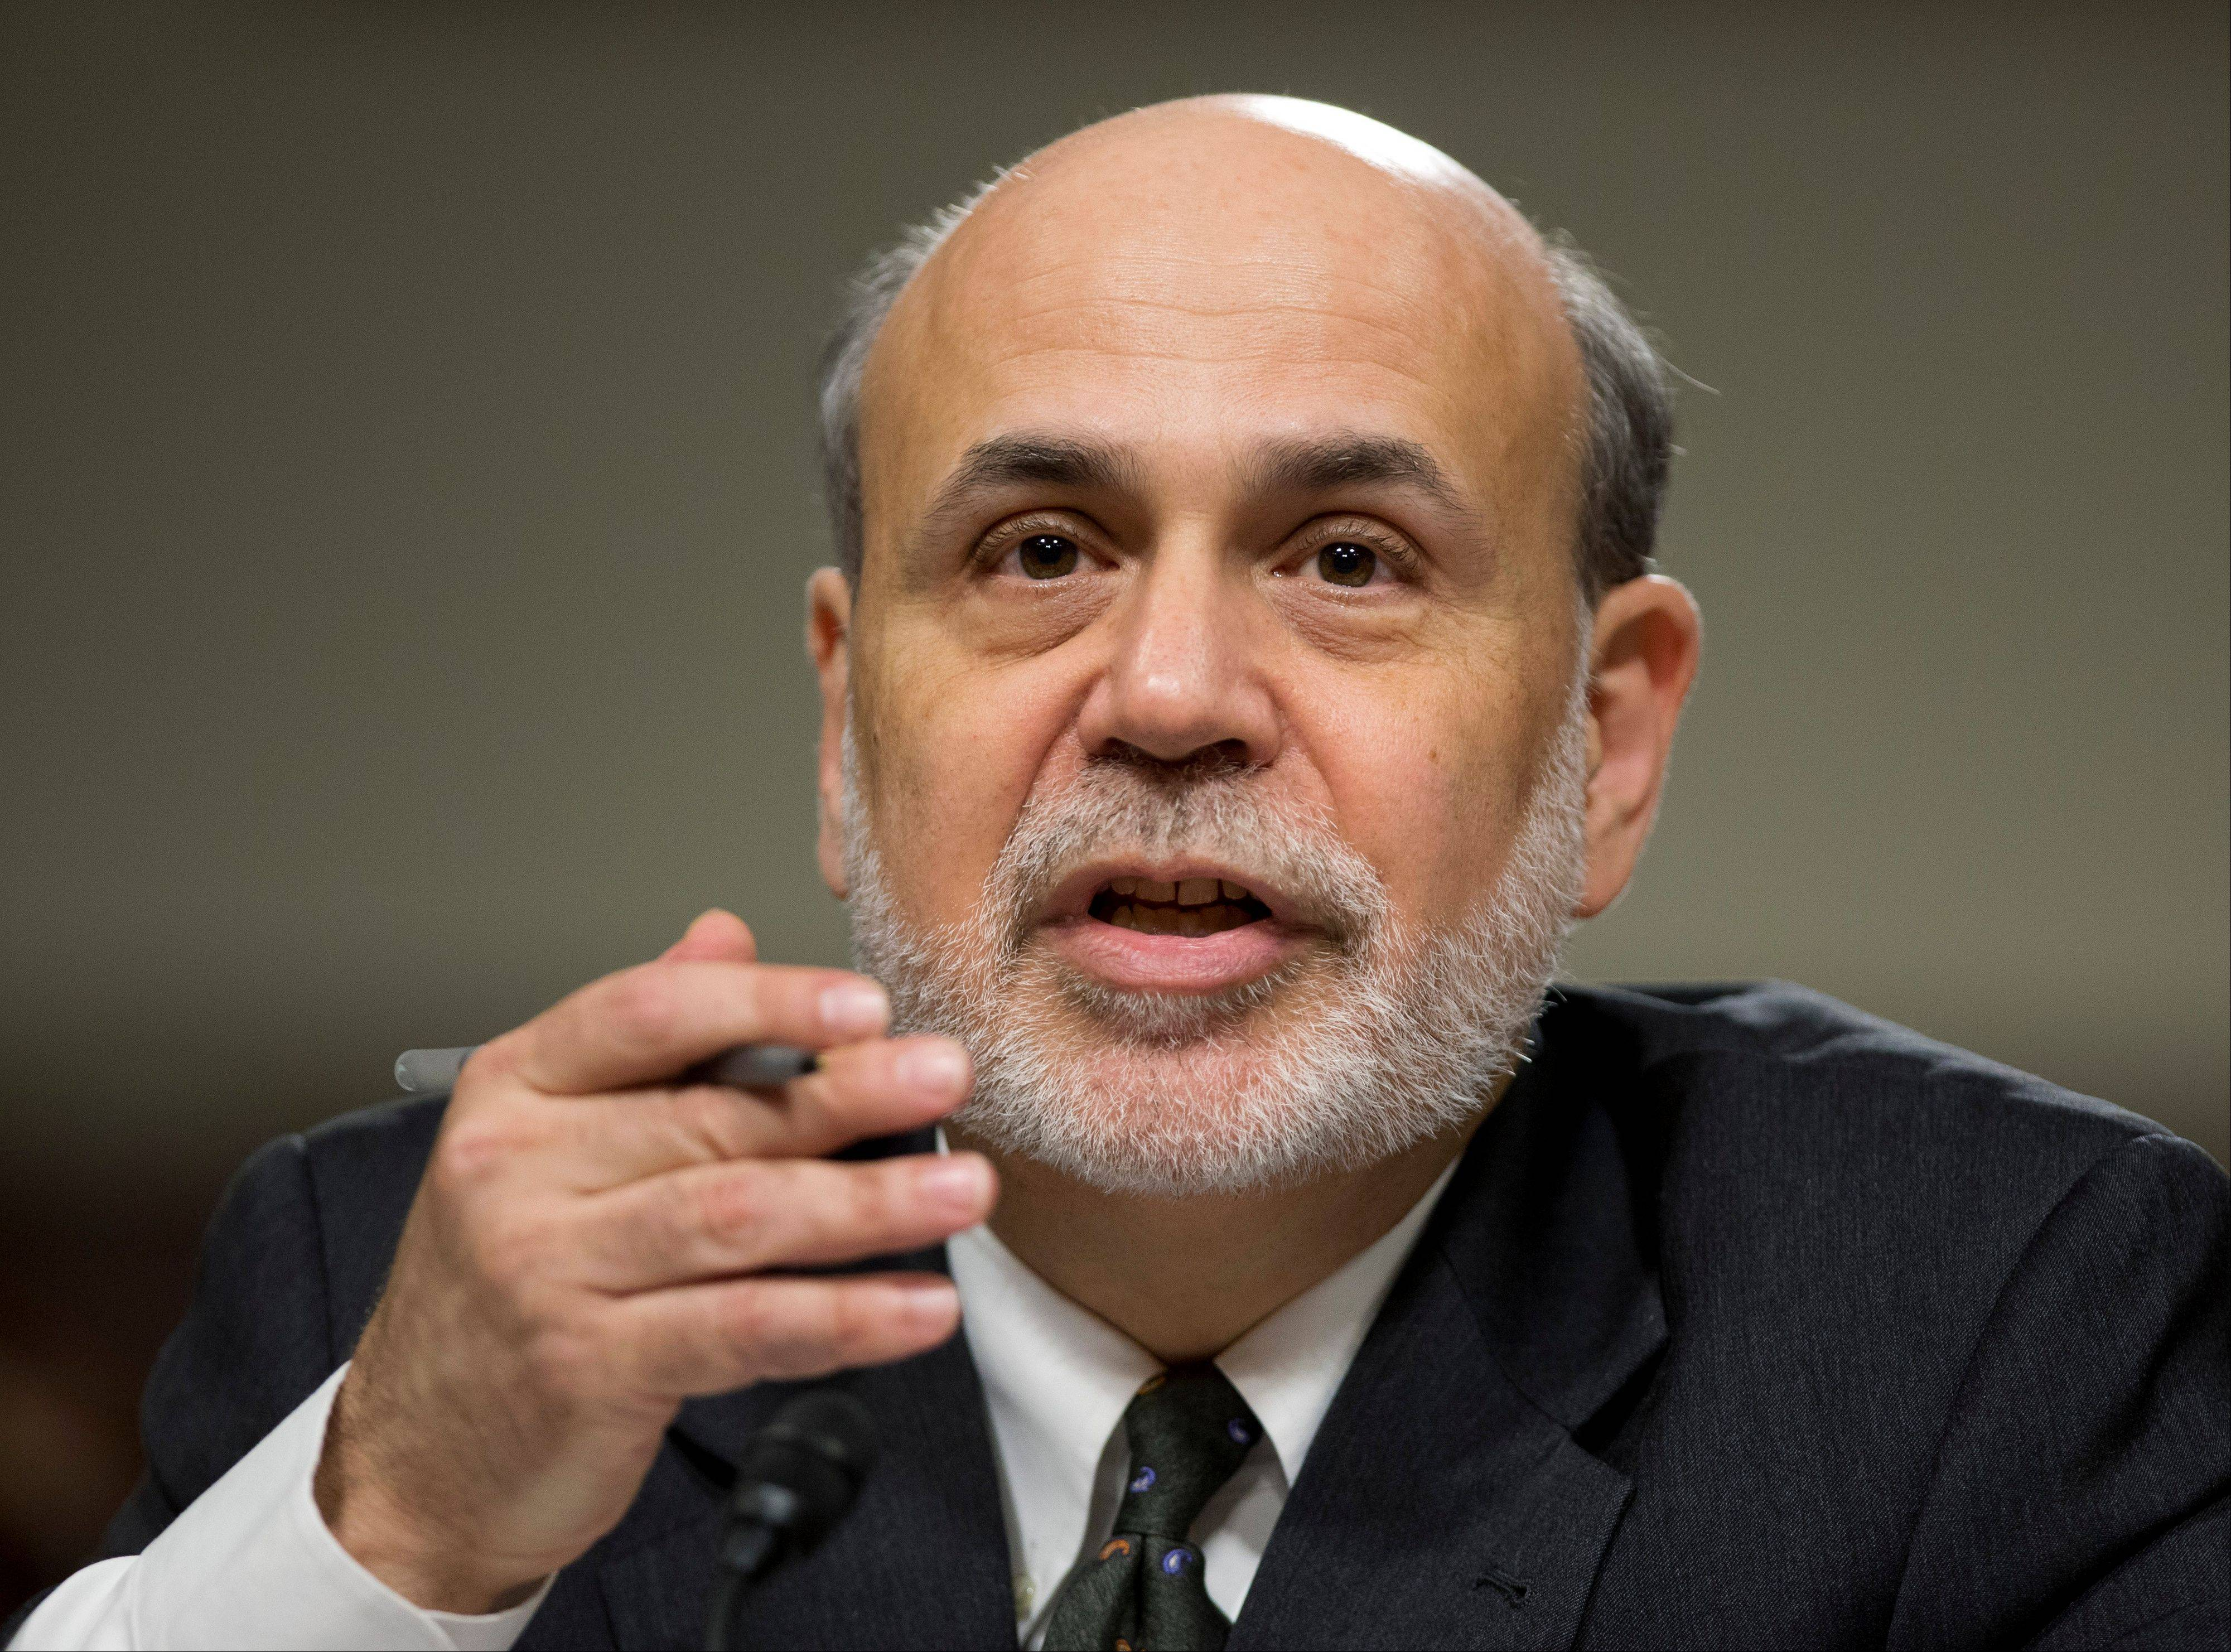 ASSOCIATED PRESS Federal Reserve Chairman Ben Bernanke, testifying on Capitol Hill Wednesday, said the U.S. job market remains weak and it is too soon for the Federal Reserve to end its extraordinary stimulus programs.